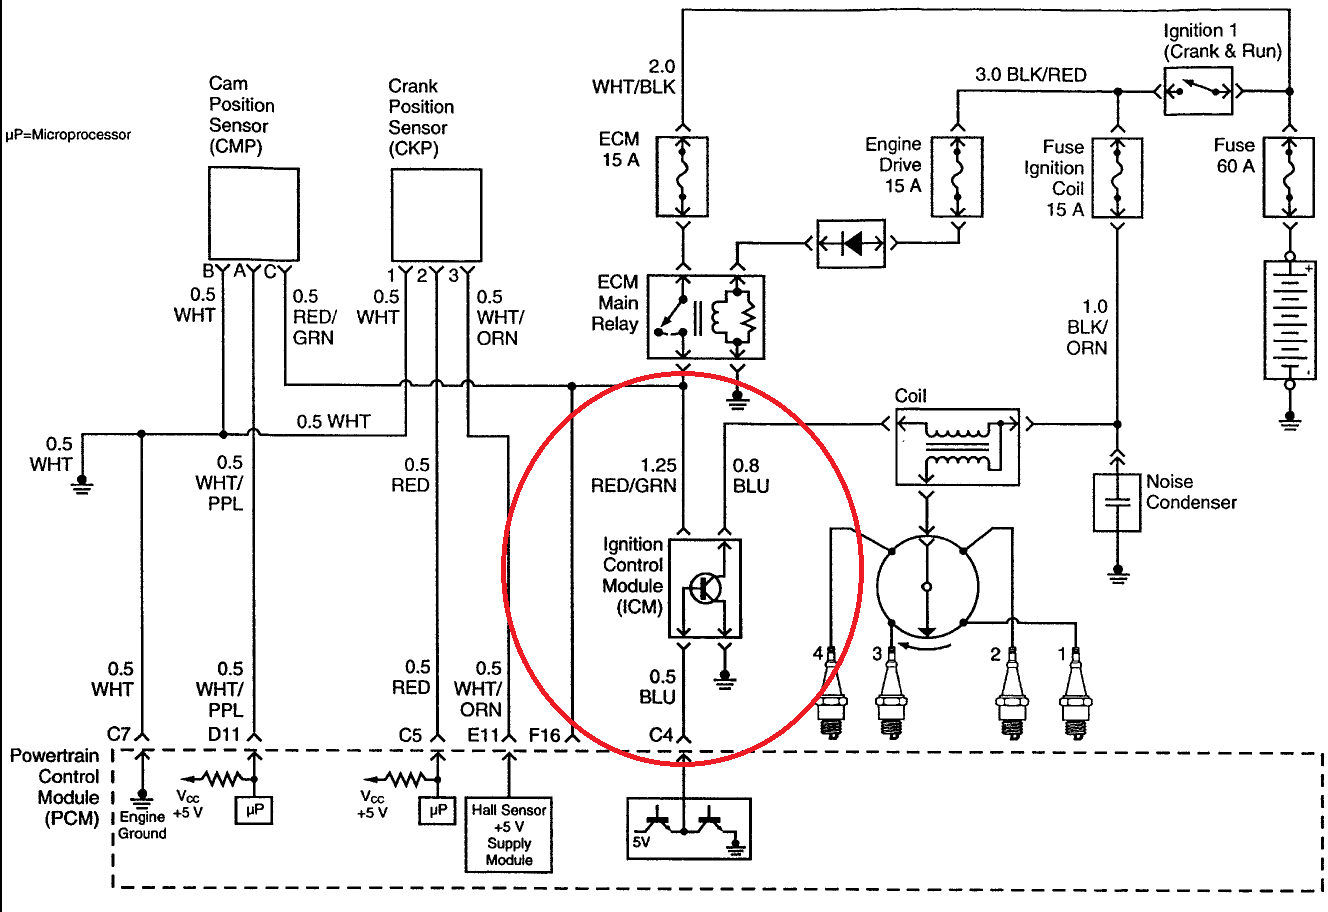 2001 Isuzu Npr Relay Diagram / Isuzu Npr Fuse Box Diagram